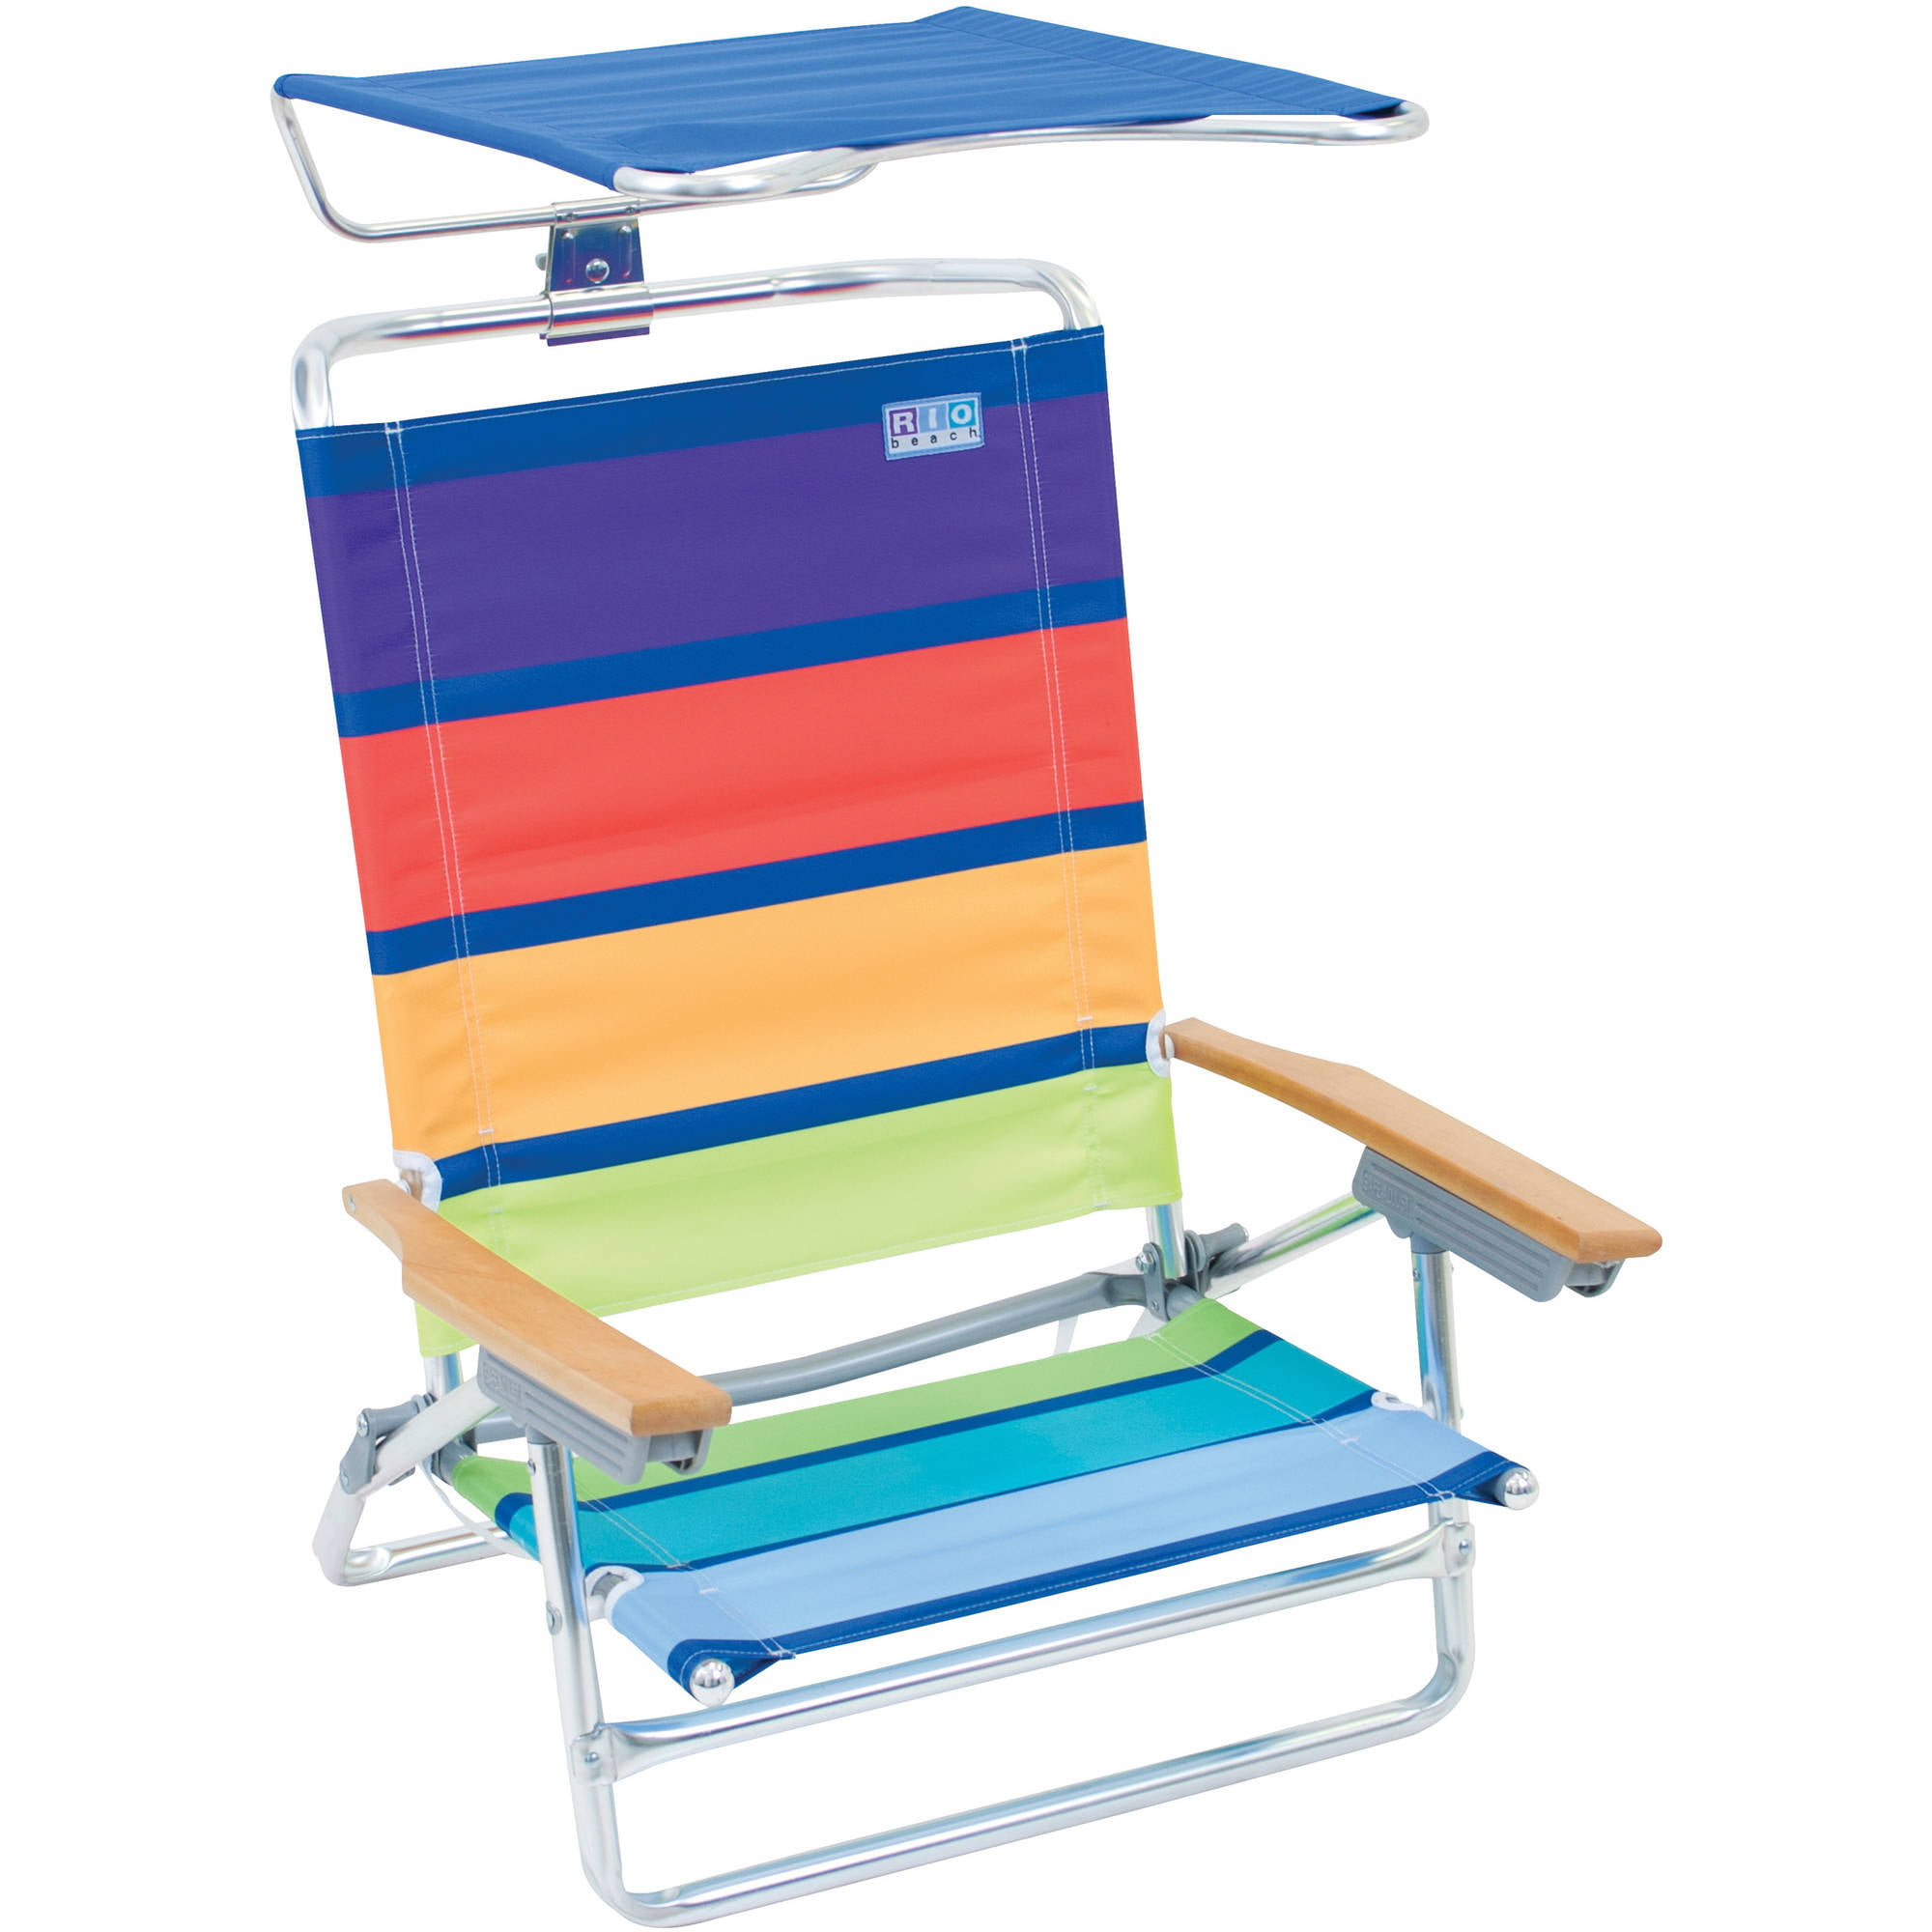 Genial Rio Classic 5 Position High Back Beach Chair With Adjustable Canopy    Walmart.com